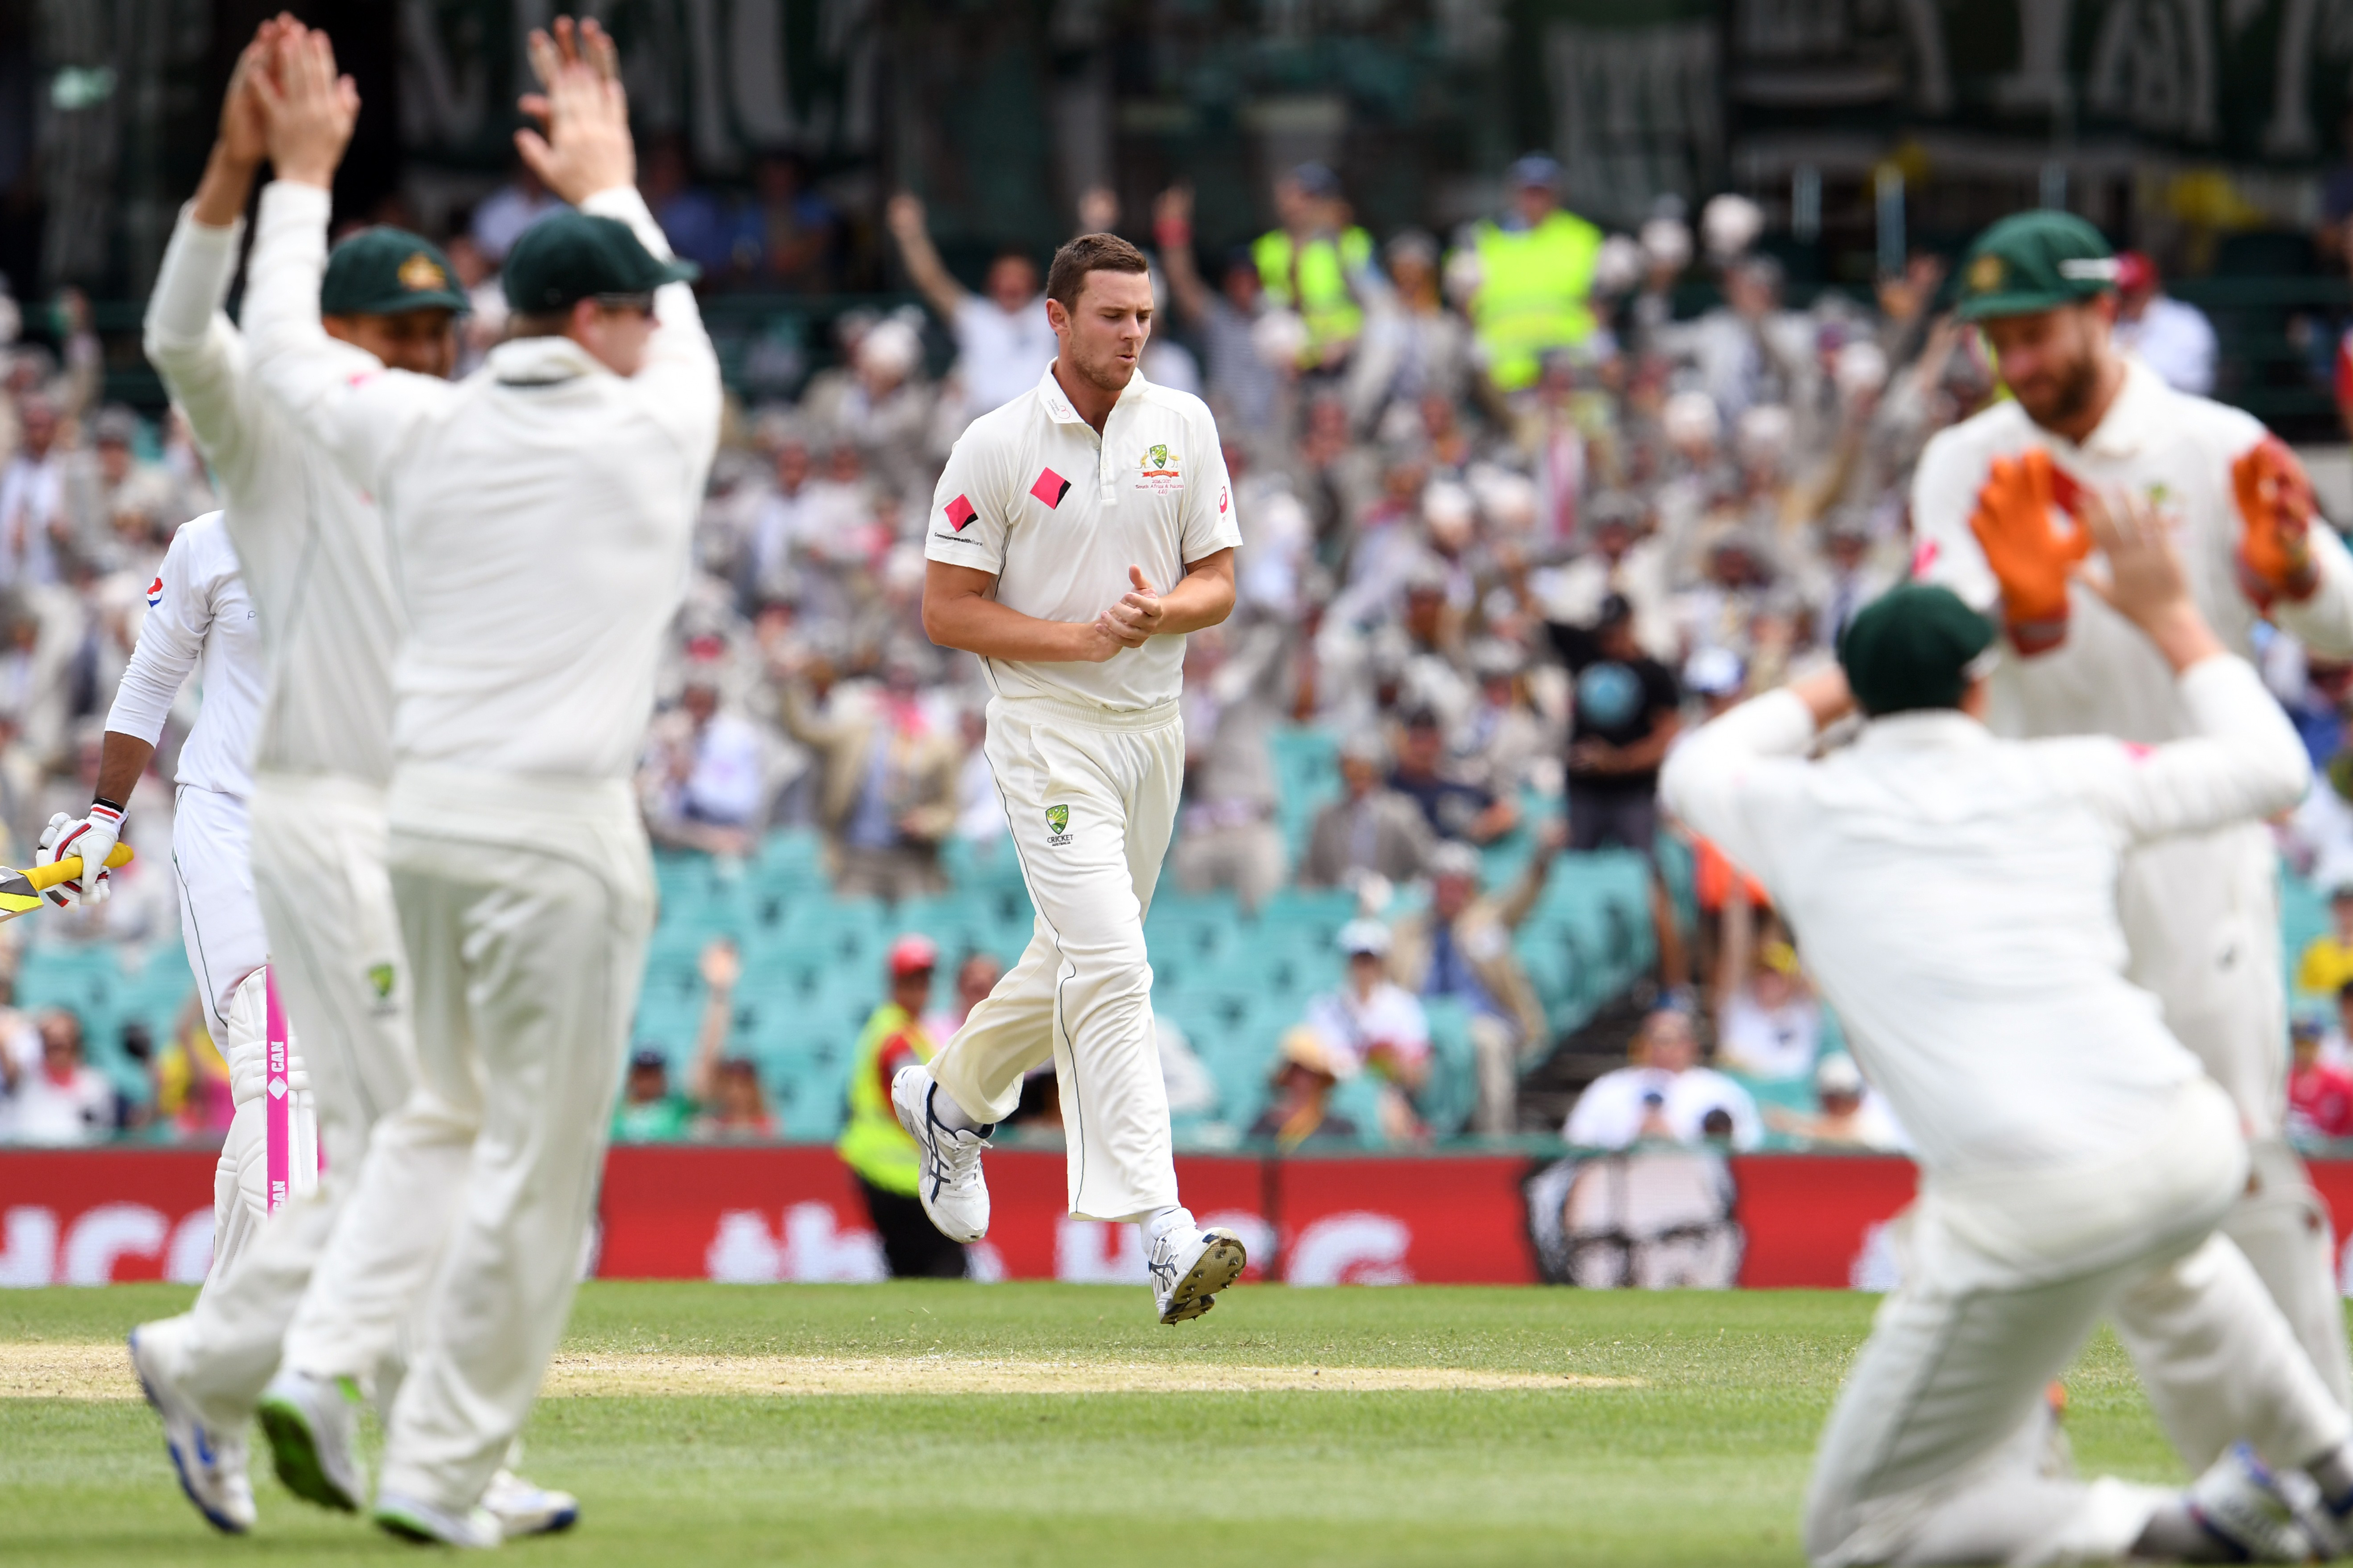 Australia's paceman Josh Hazlewood (C) and teammates celebrate dismissing Pakistan's batsman Sharjeel Khan during the second day of the third cricket Test match at the SCG in Sydney on January 4, 2017. / AFP PHOTO / William WEST / -- IMAGE RESTRICTED TO EDITORIAL USE - STRICTLY NO COMMERCIAL USE --